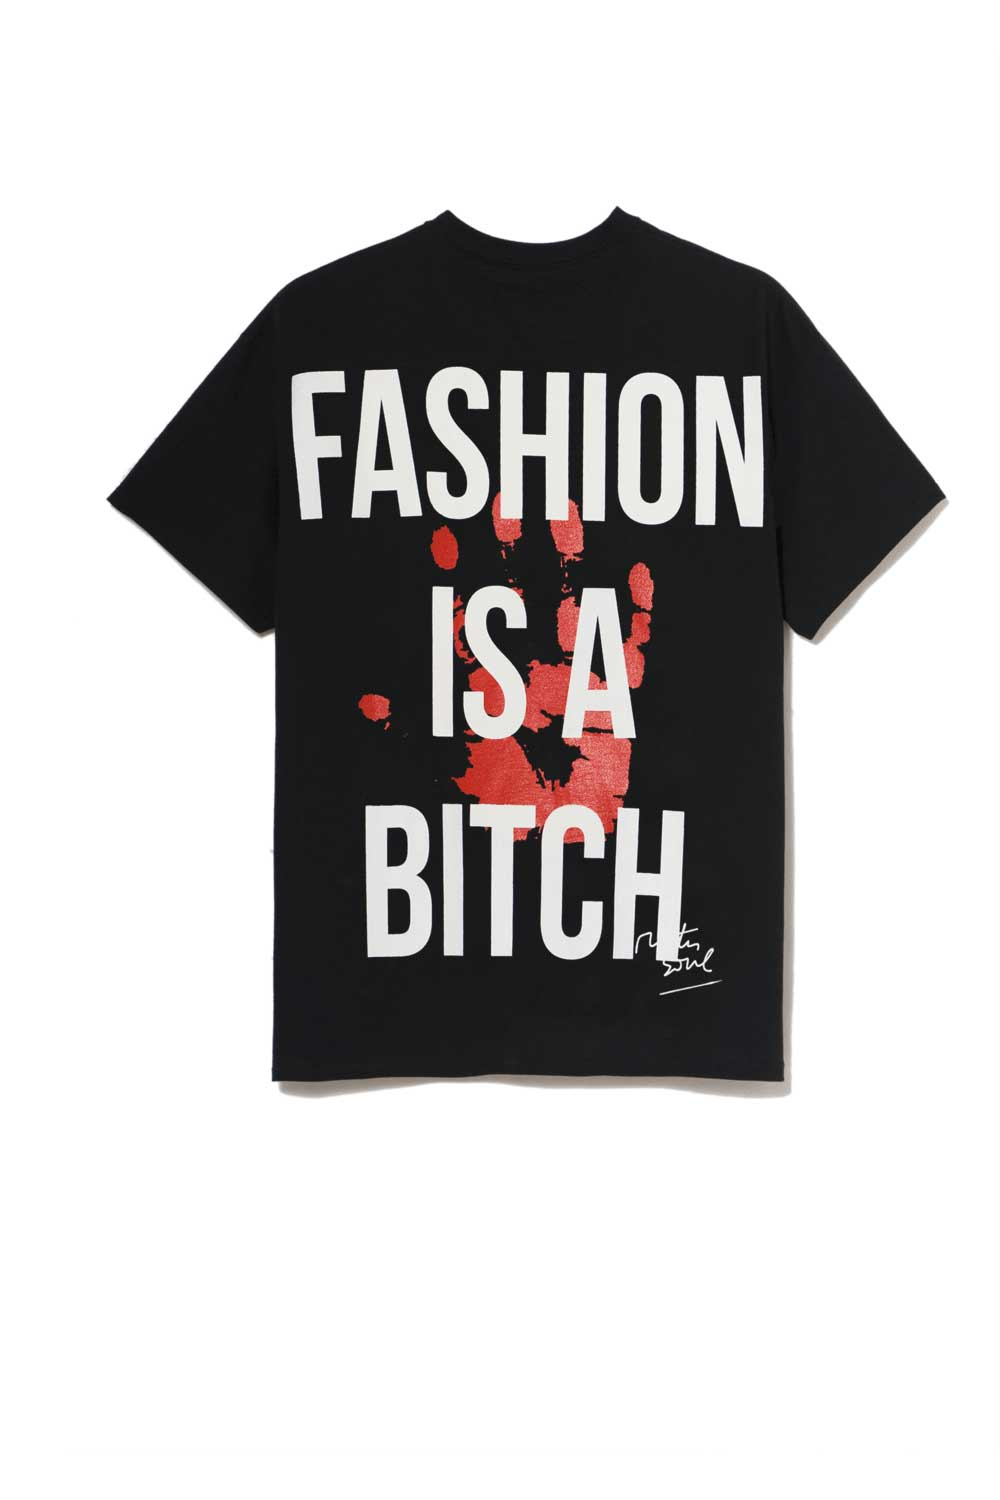 Leroyaume T-shirt streetwear fashion is a bitch noir